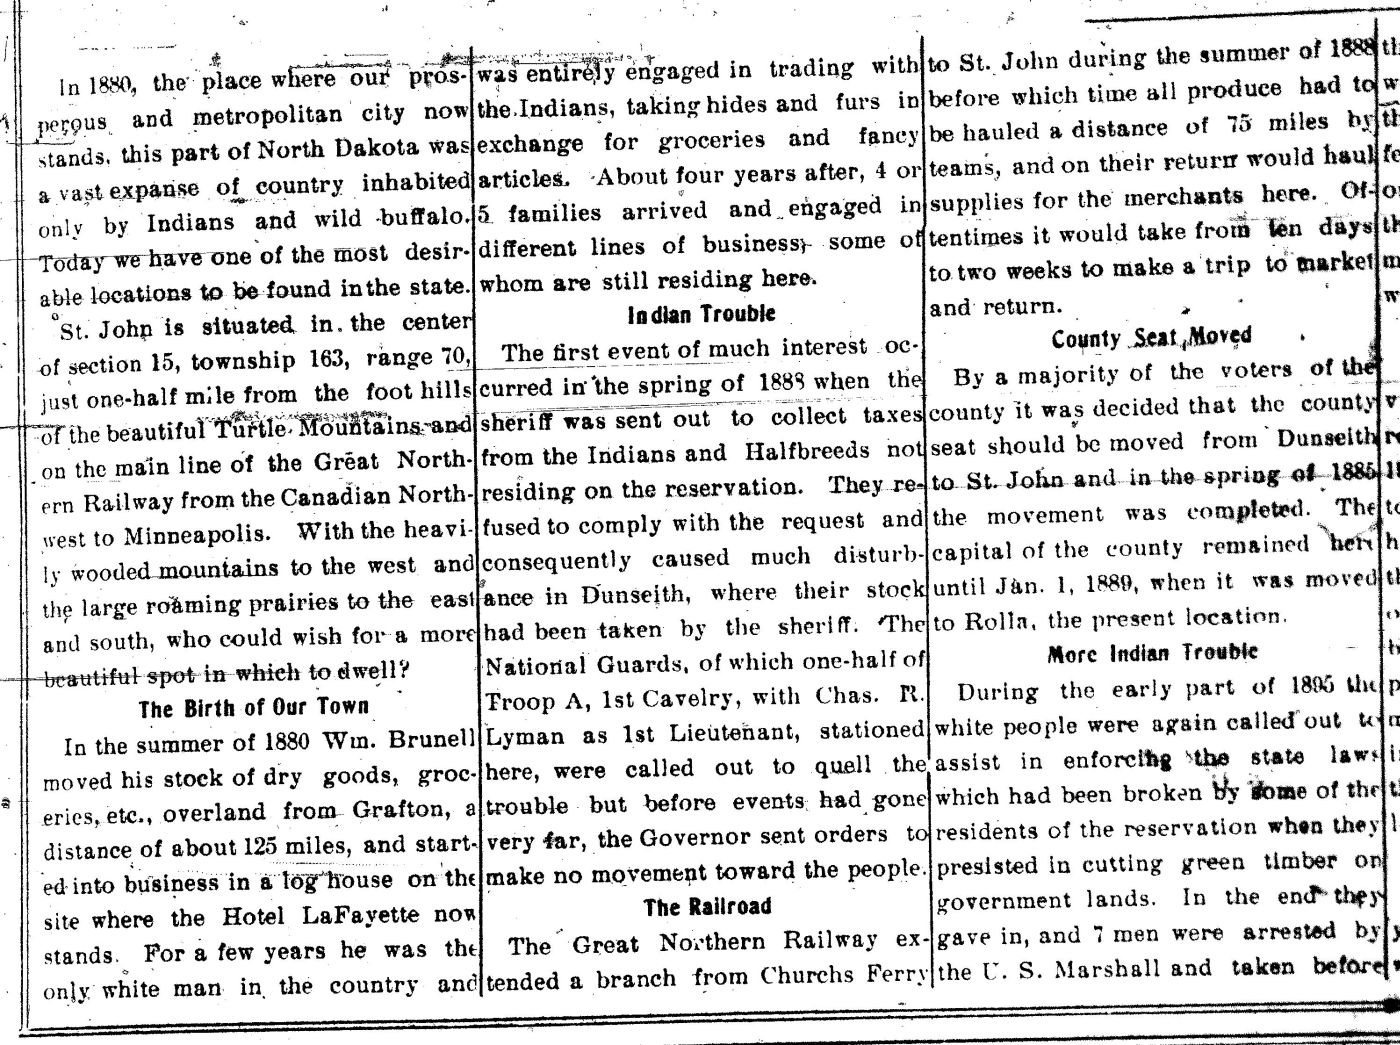 A January 1907 Retrospective of the Founding of the Village of St. John